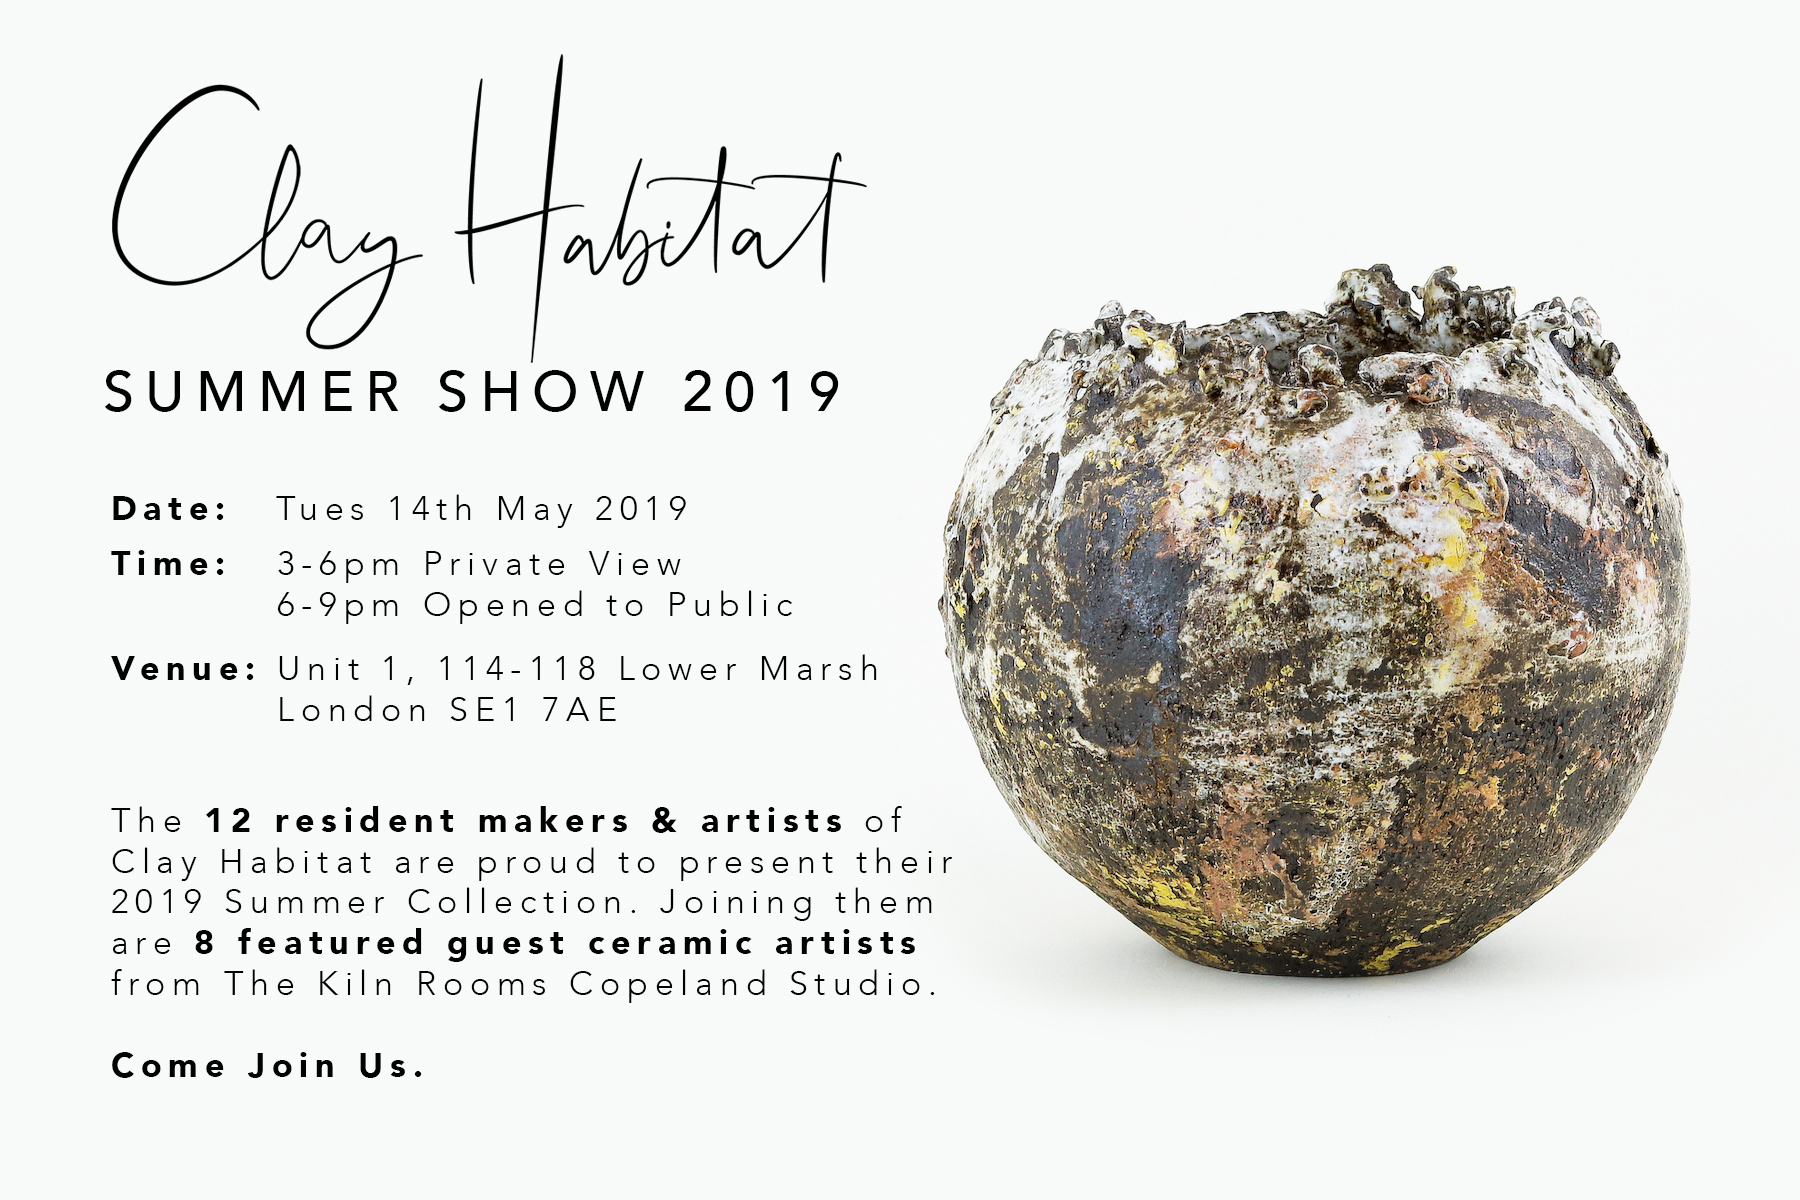 Clay Habitat Summer Show 14th-19th May - I'll be showing a range of tableware and vases at the Clay Habitat Summer show as one of their invited guest artists. It's a fabulous pop up showacse for emerging ceramic artists, so don't miss it.